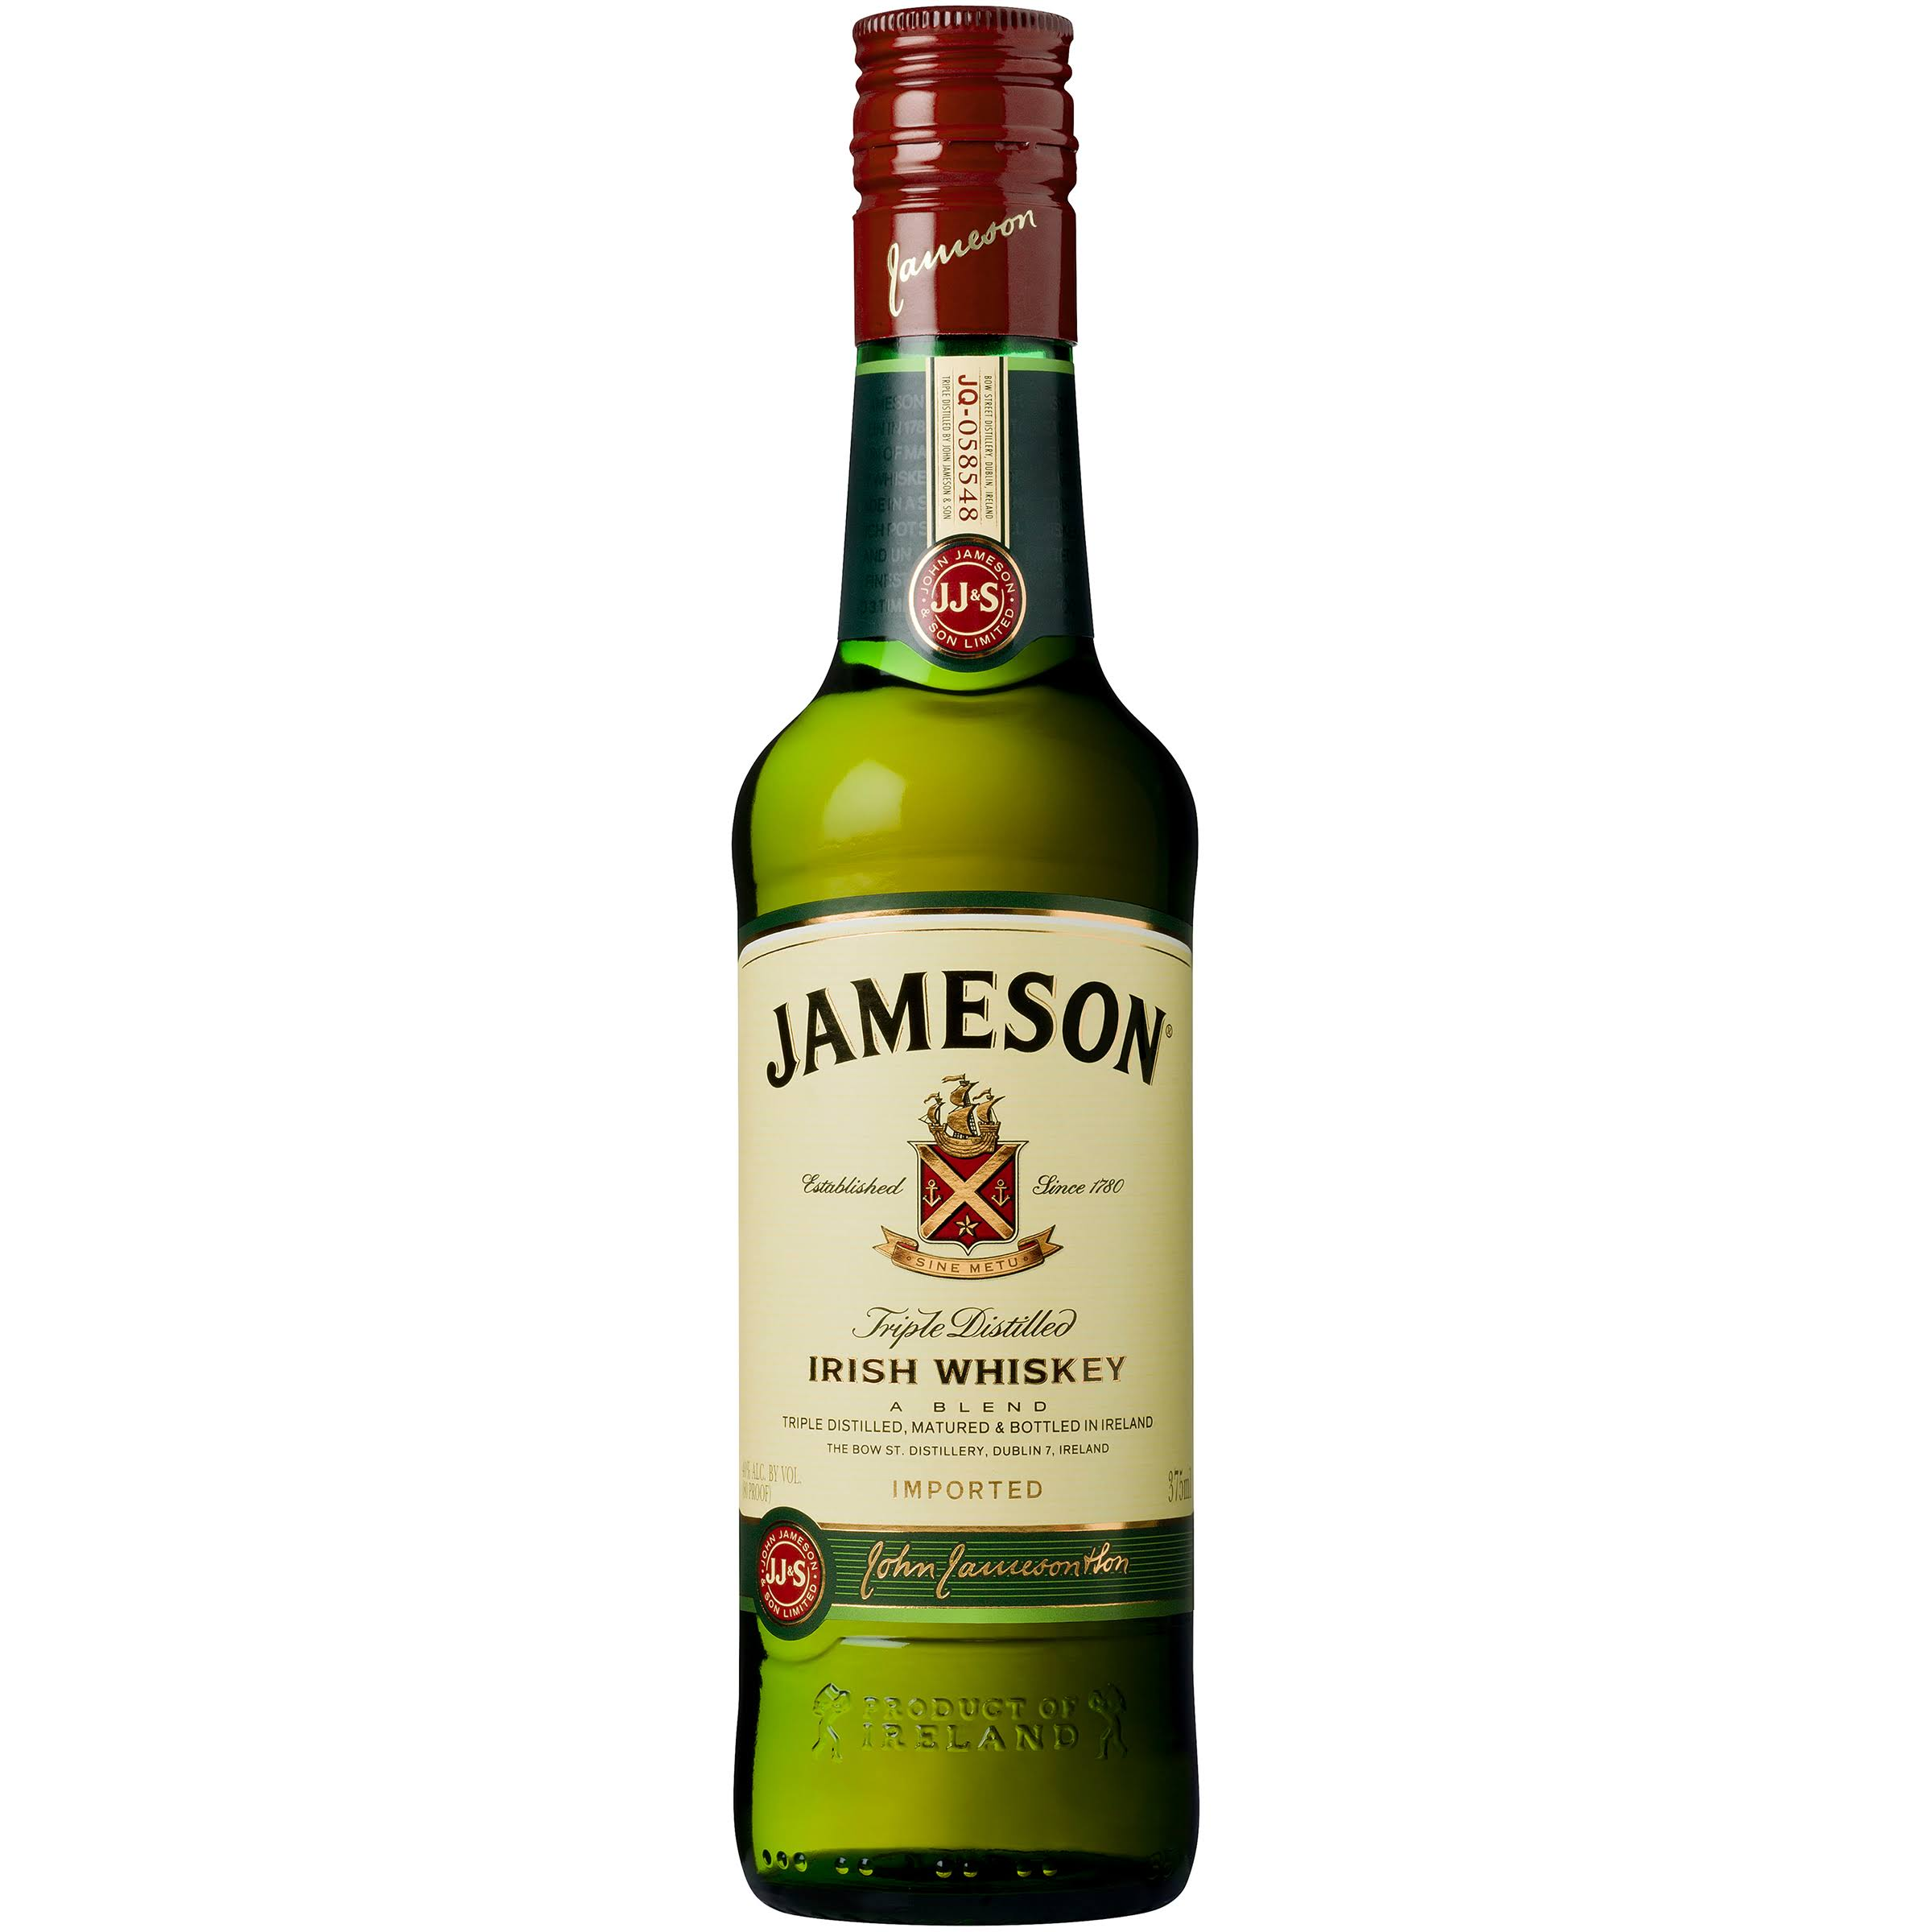 Jameson Irish Whiskey - 375 ml bottle